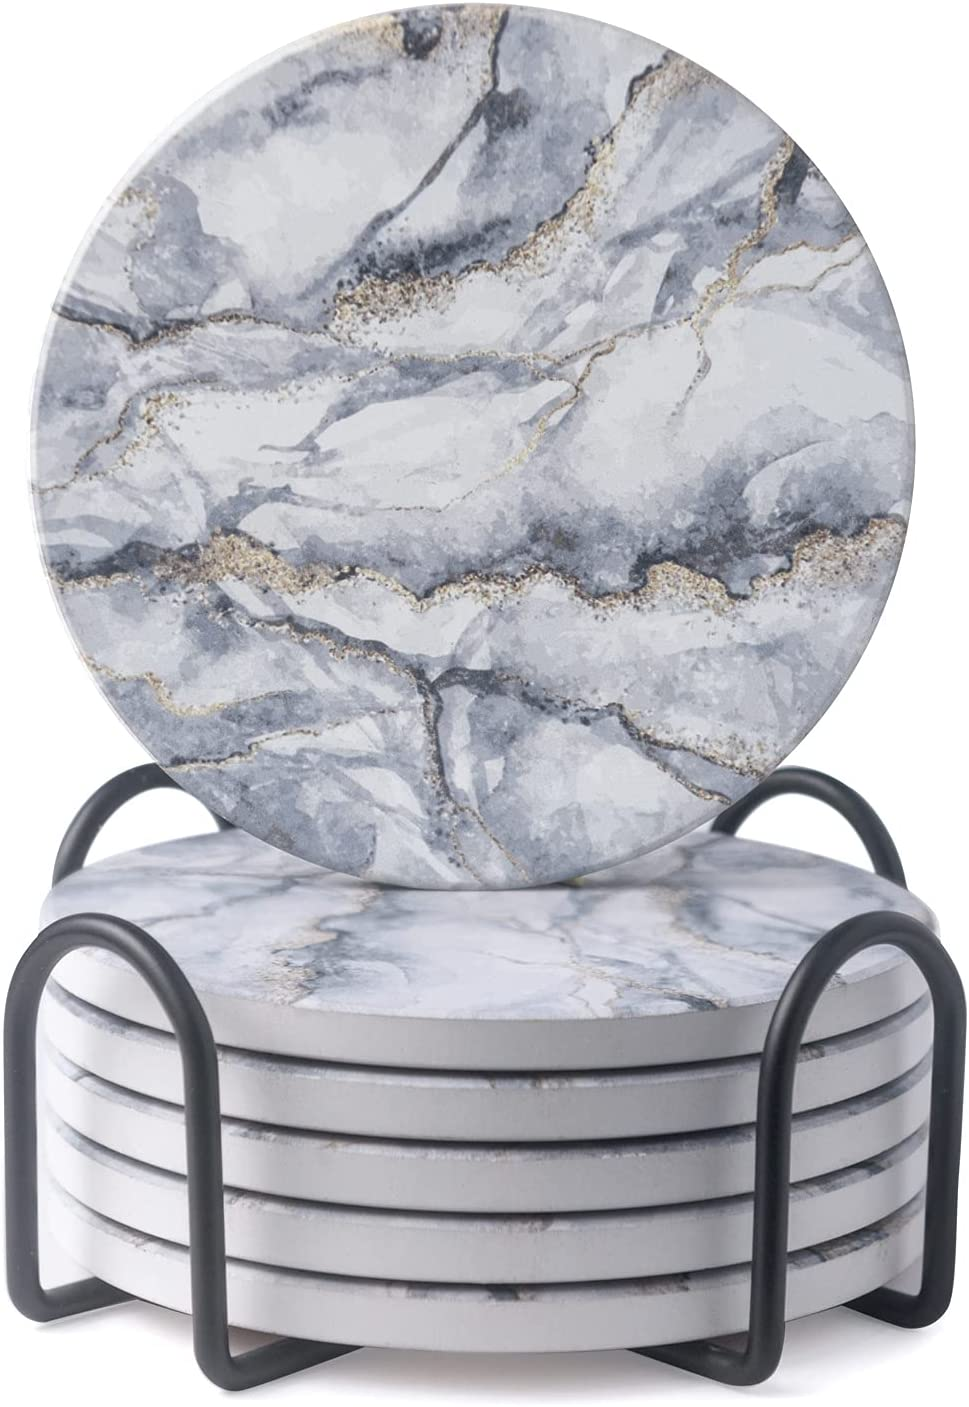 Higherz Absorbent Coasters For Drinks with Holder - Fancy Marble Ceramic Coasters for Tabletop protection, 4